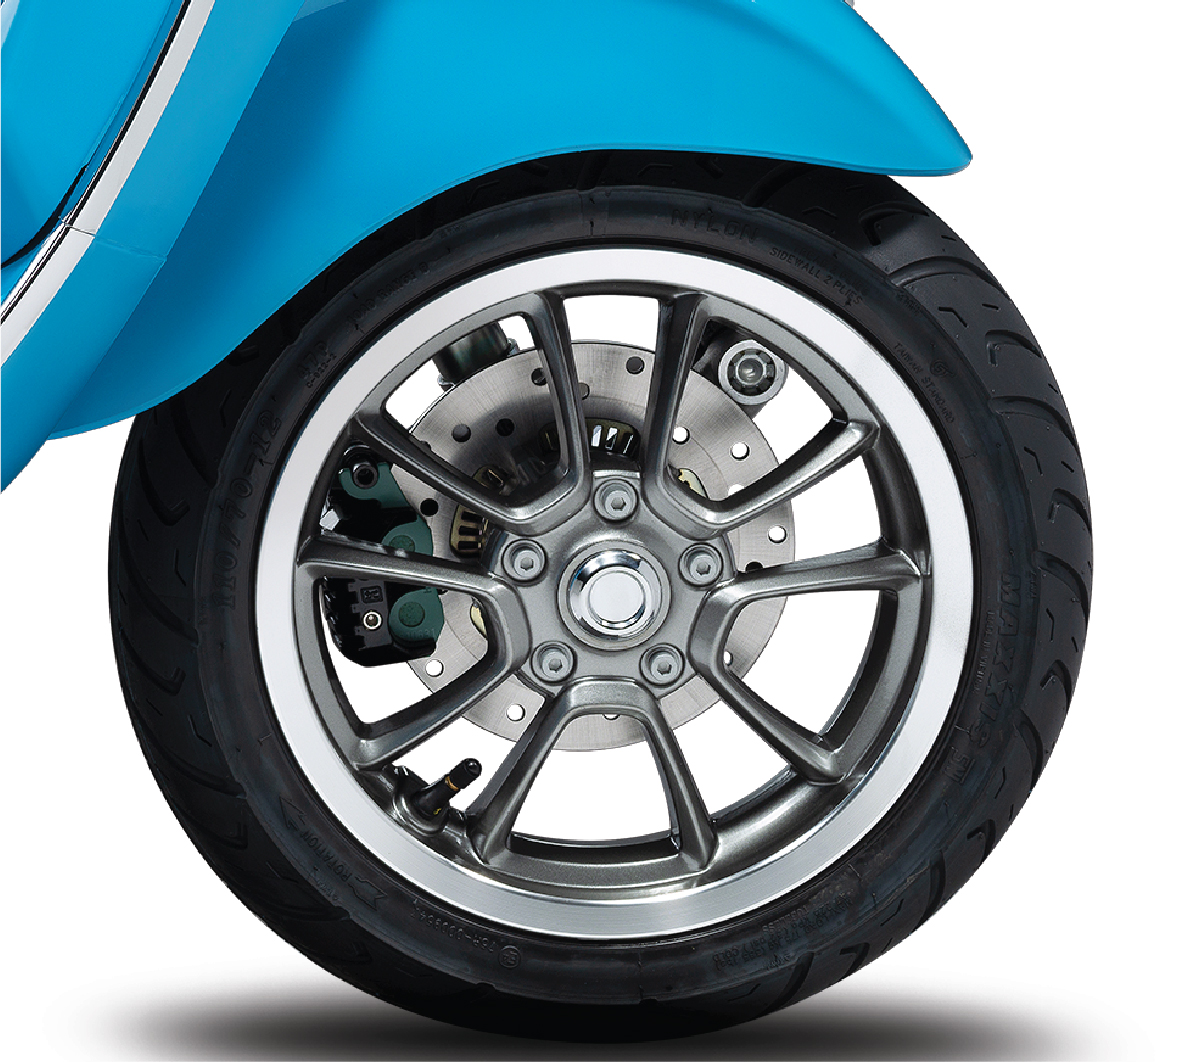 detail-vespa-50th-anniversary-blue-front-wheel.jpg